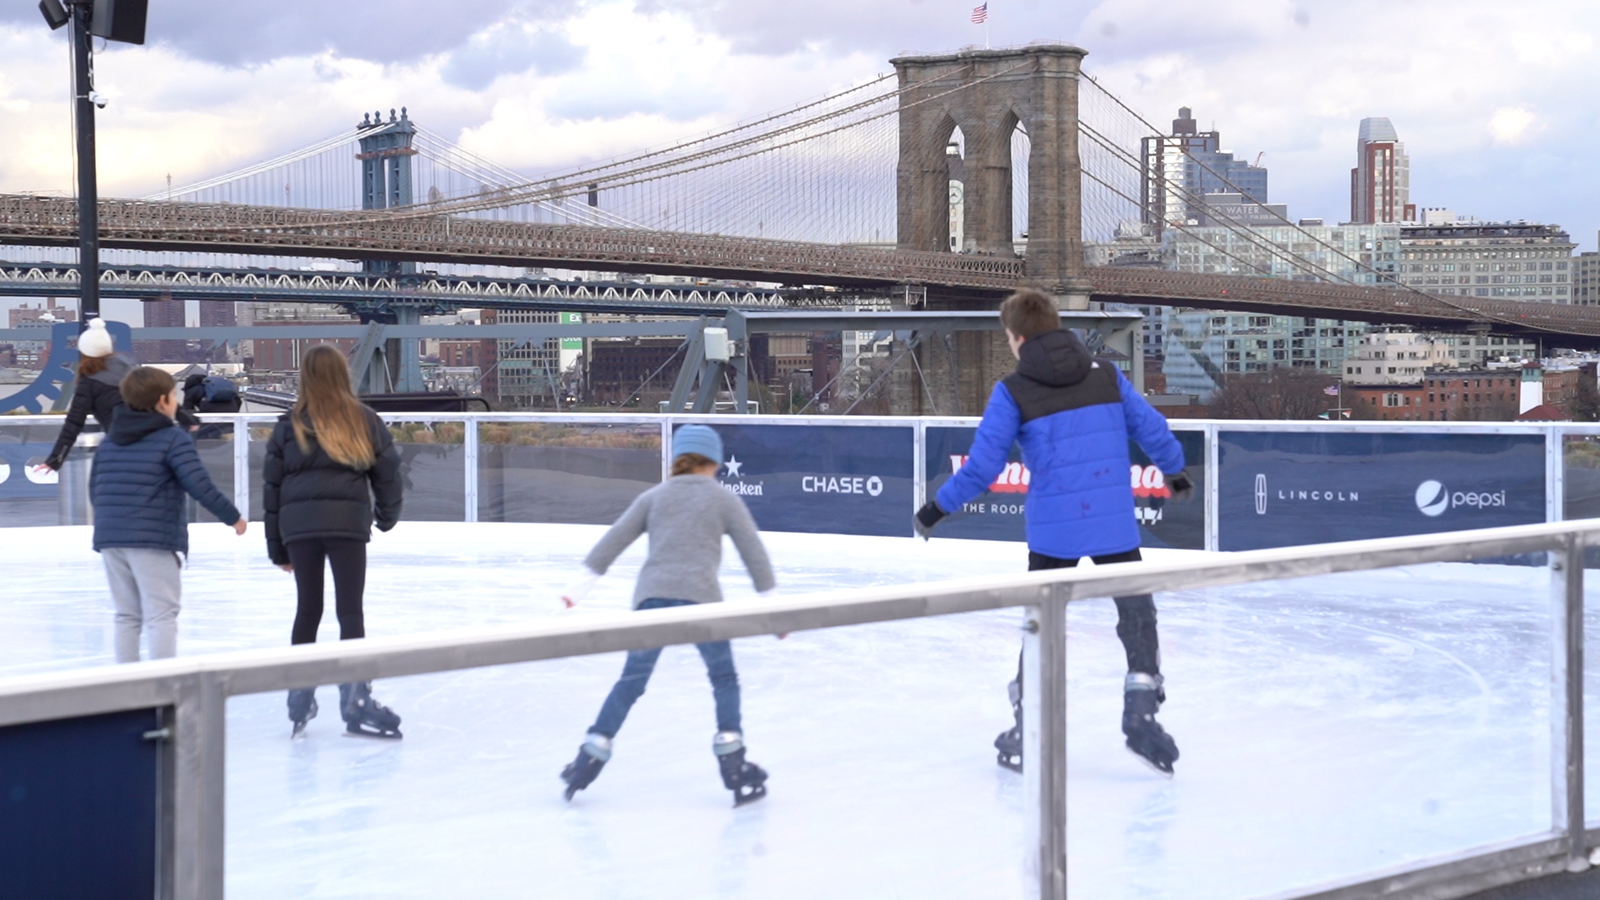 Ice skate on rooftop in Manhattan with skyline views of New York City